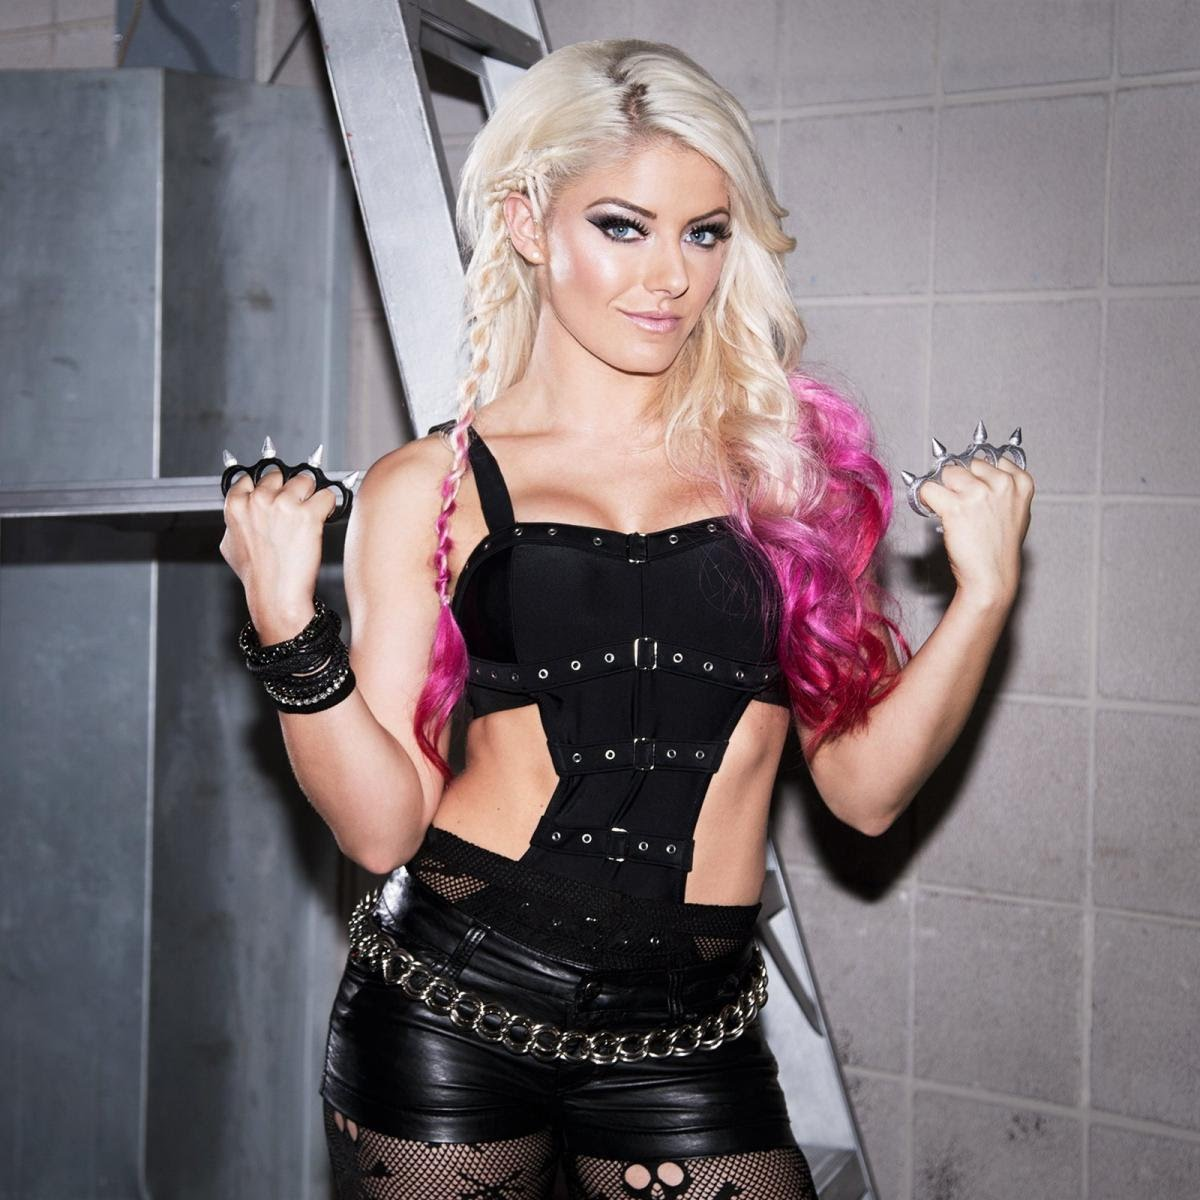 Alexa Bliss latest Photoshoot